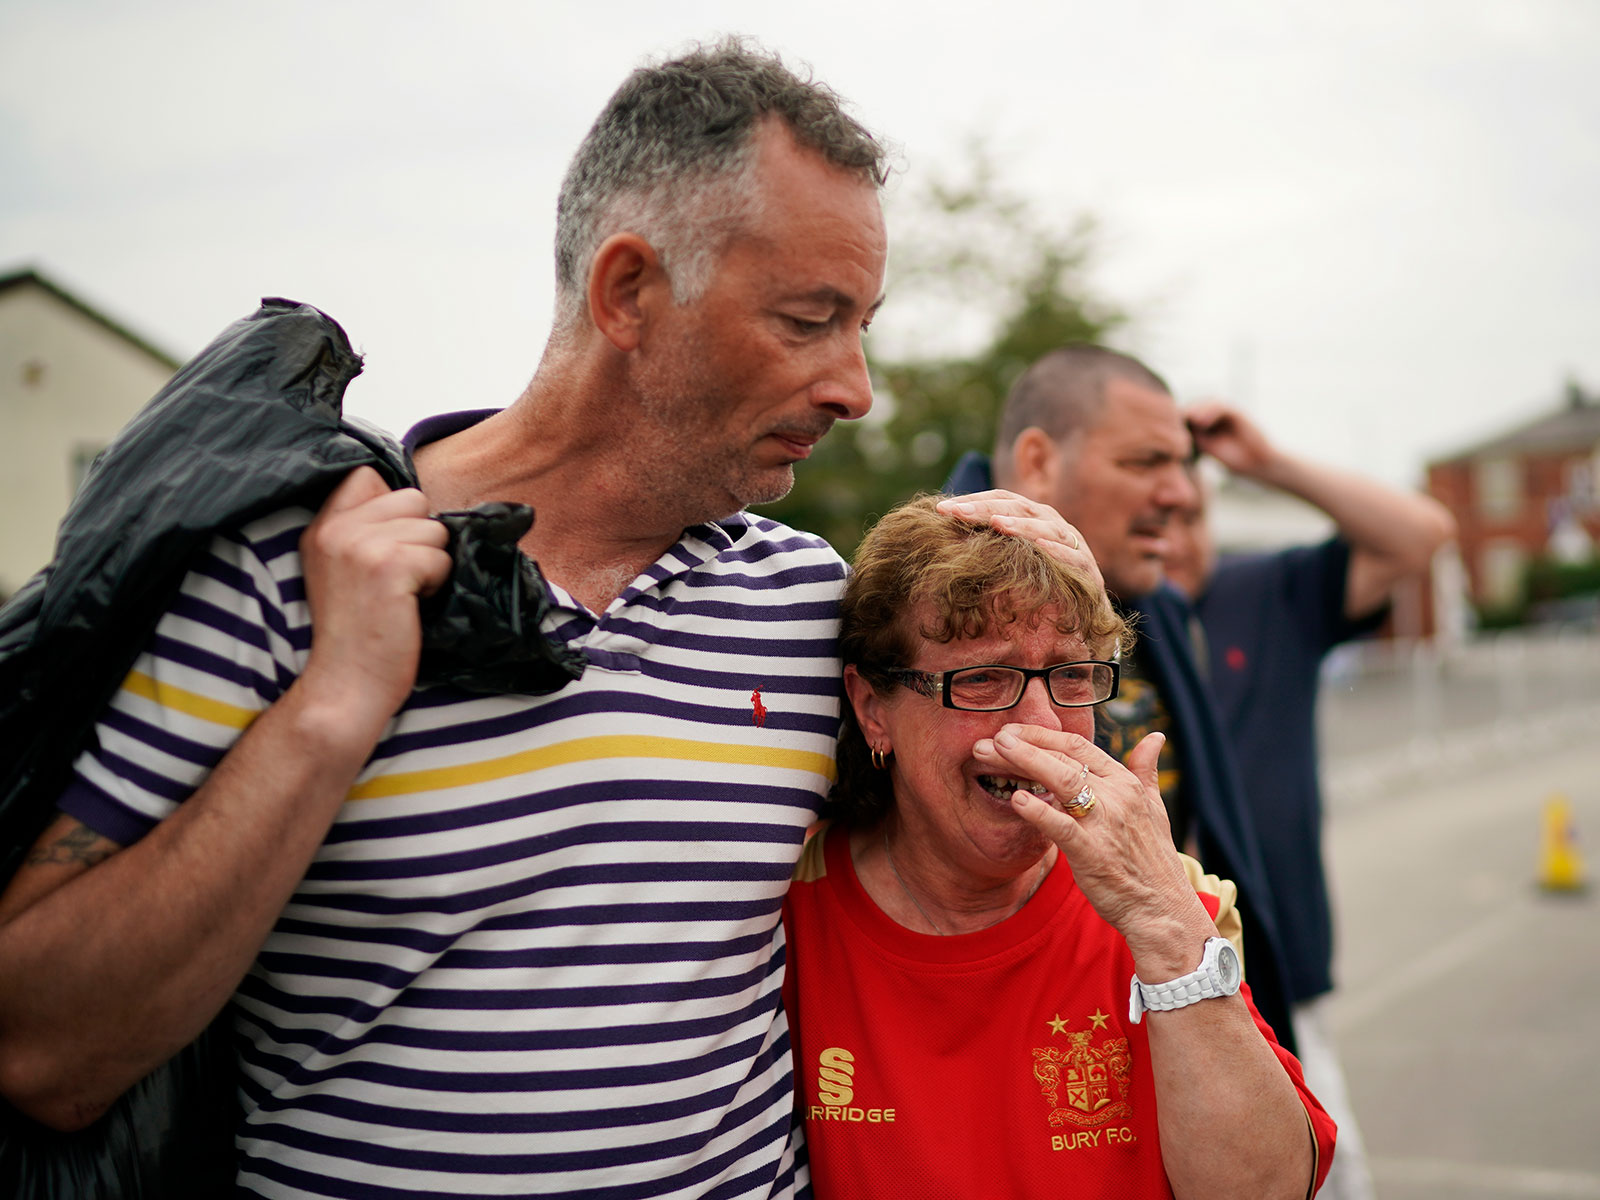 Bury fans mourn the potential loss of their club